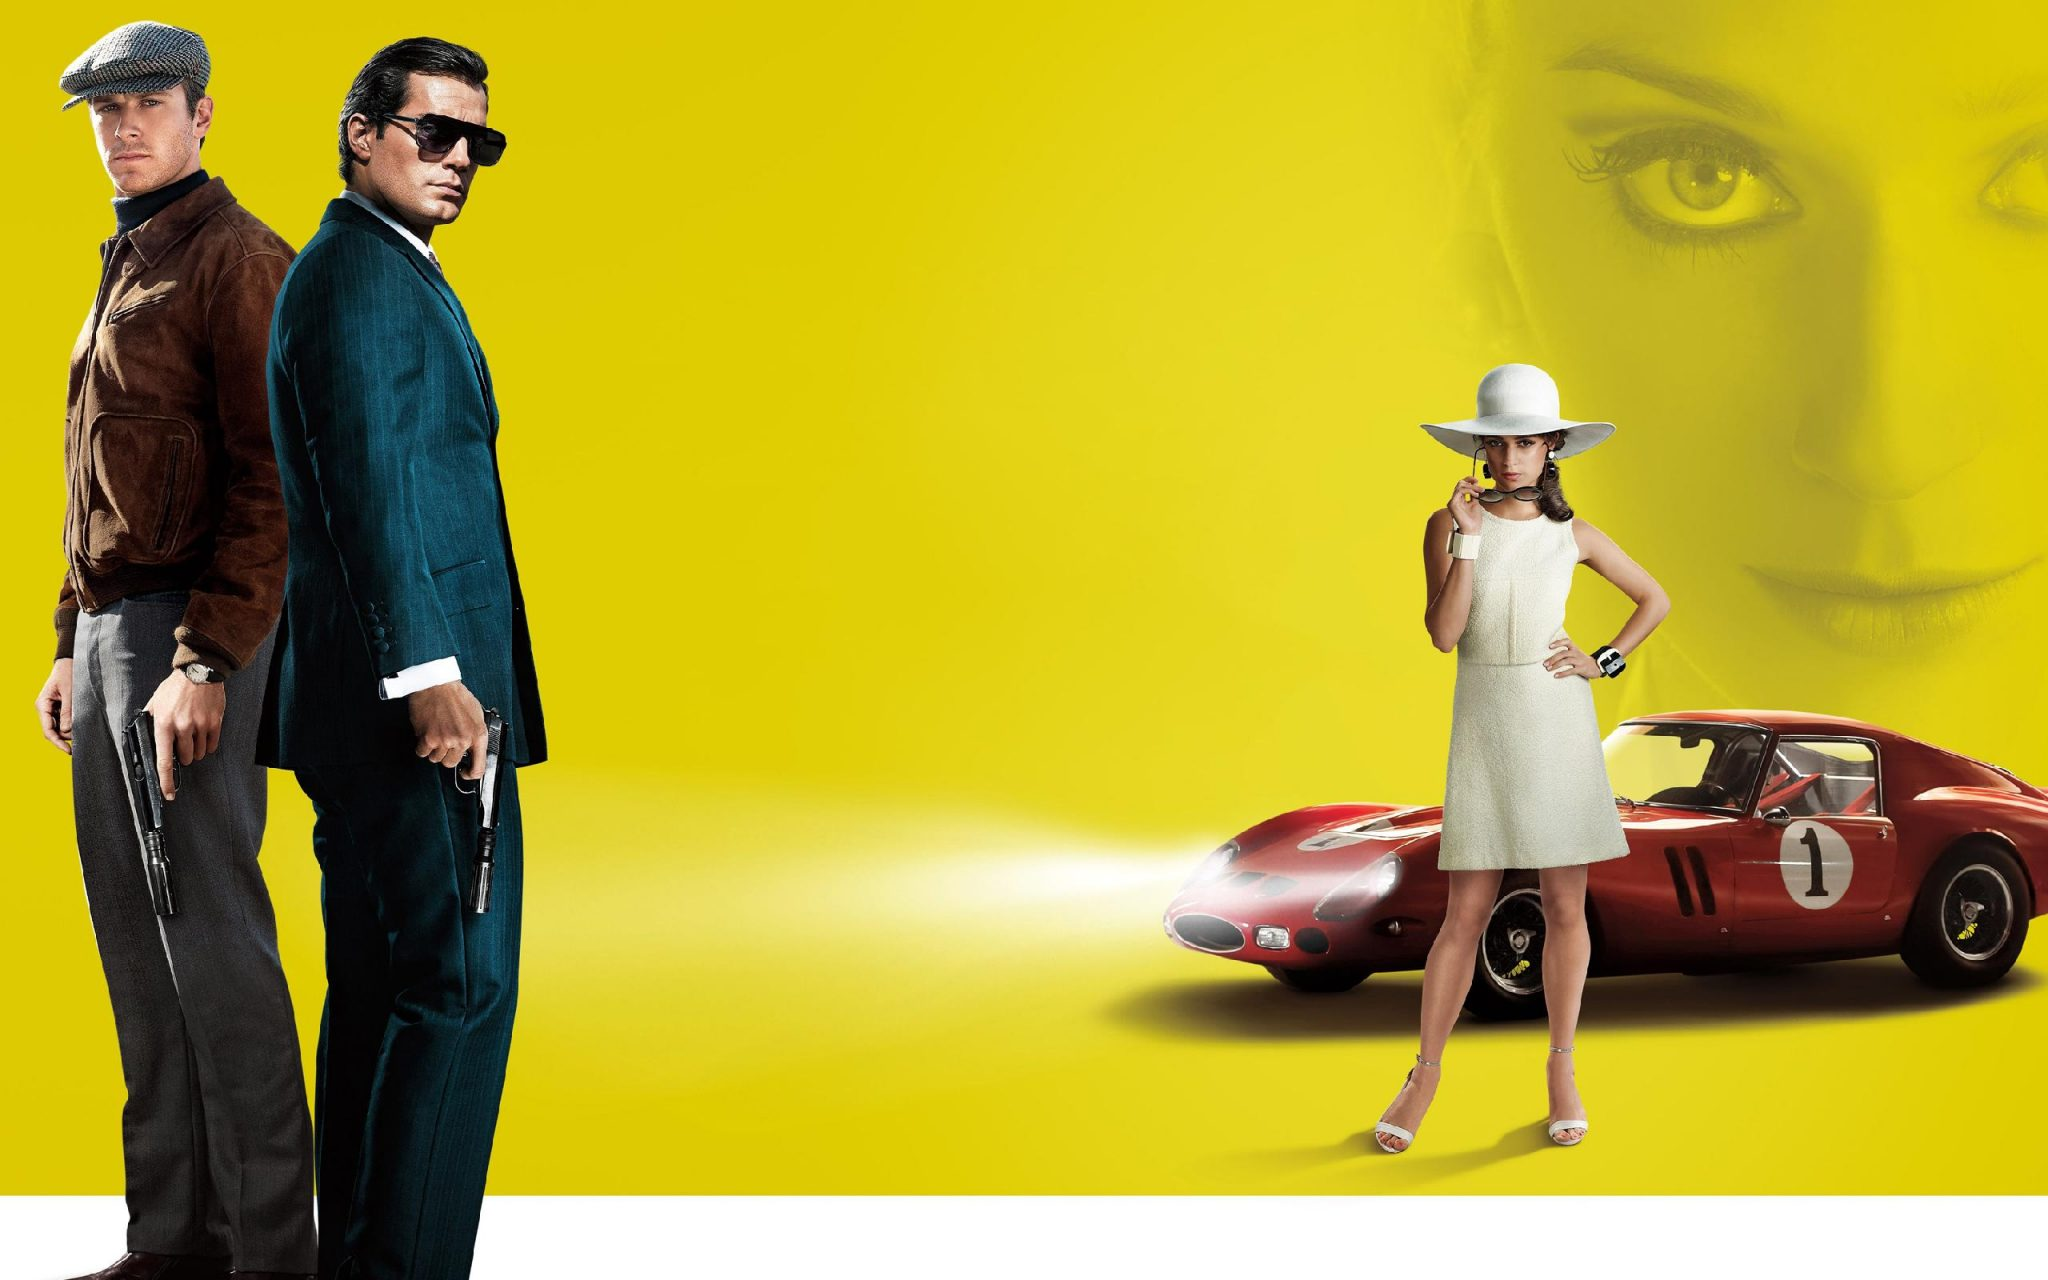 'The Man from U.N.C.L.E.' Review — I Spy a Franchise